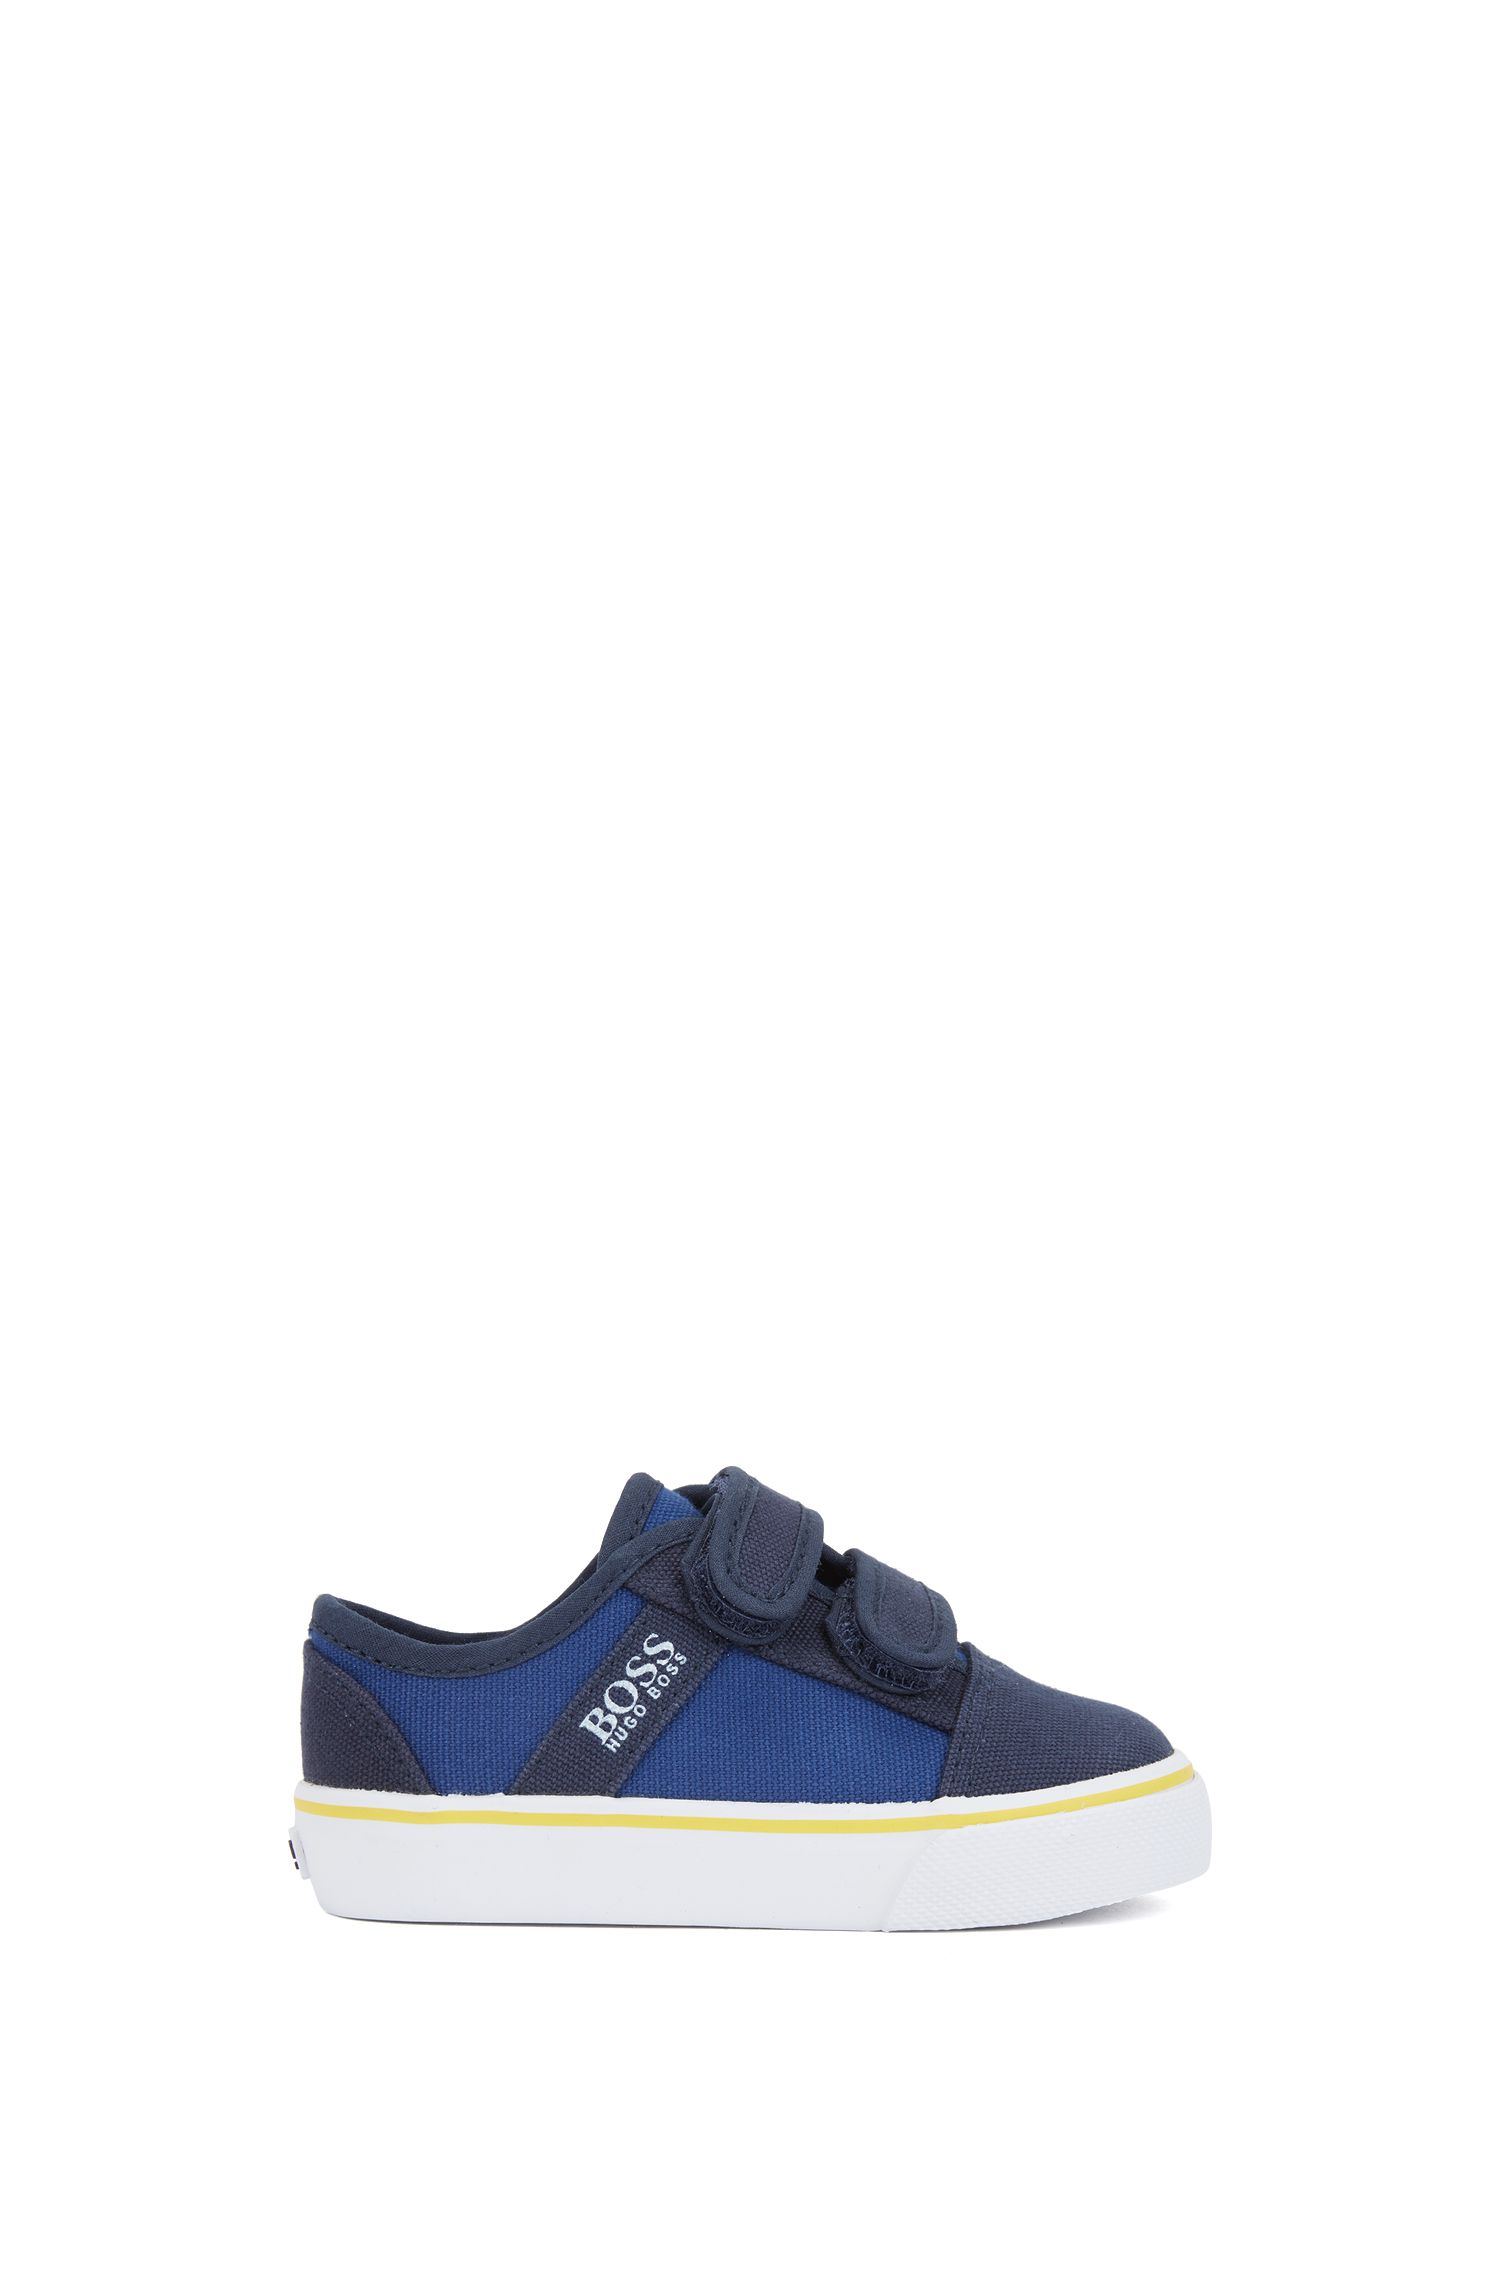 Kids' canvas trainers with touch-fastening straps